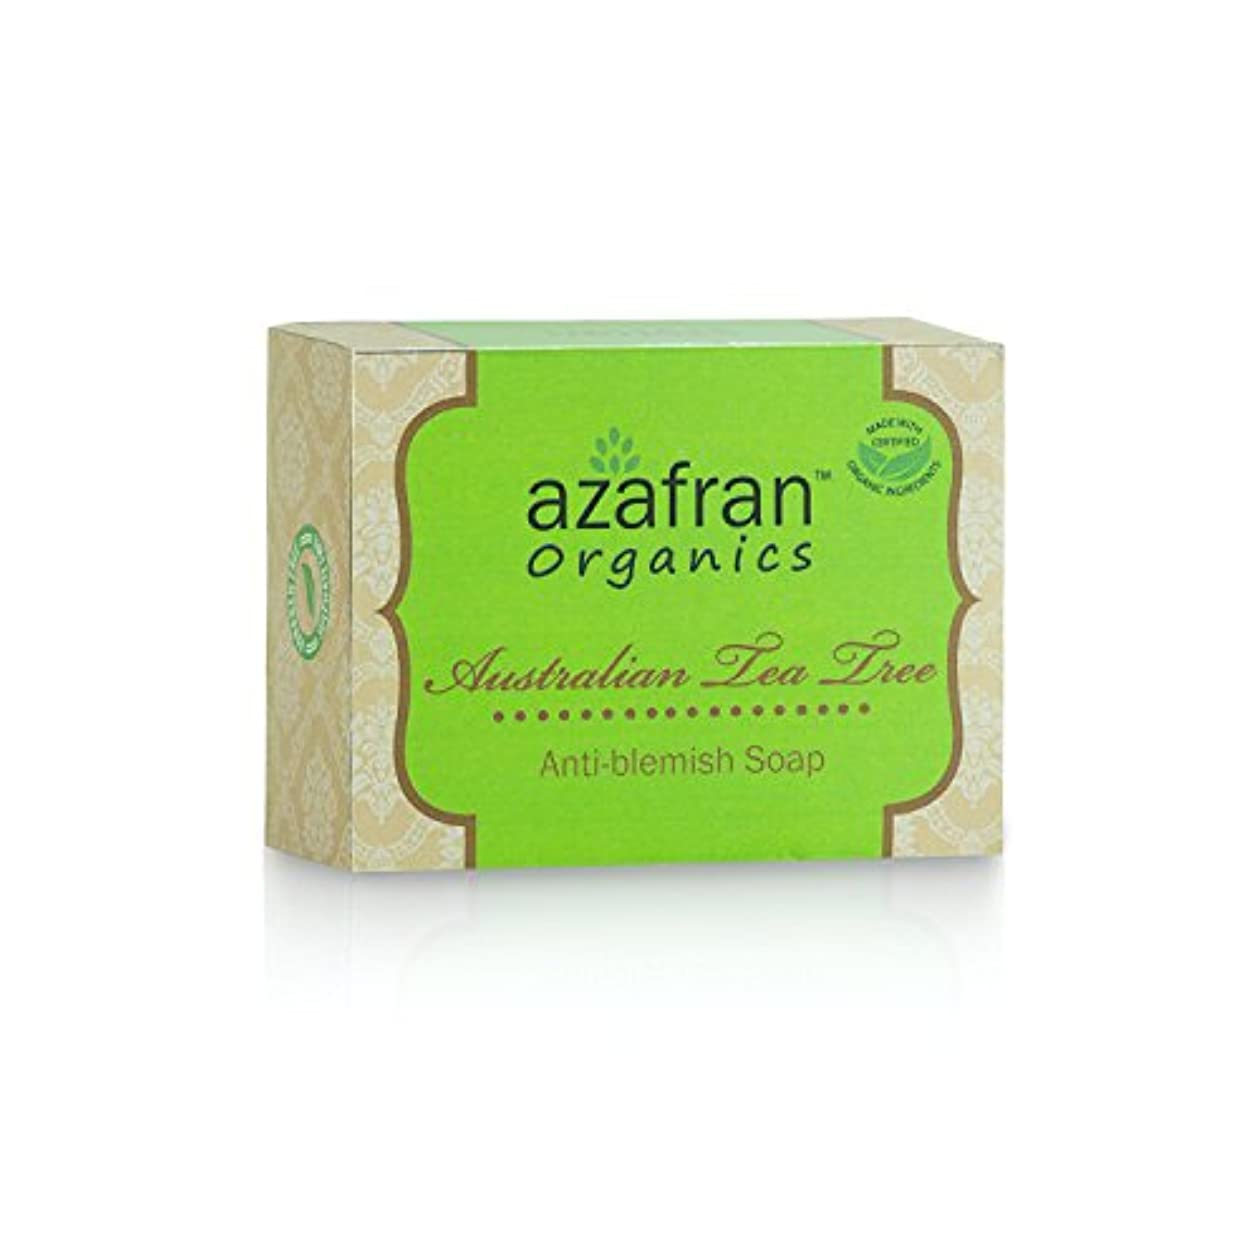 乳白作り上げる予防接種Azafran Organics Australian Tea Tree Anti-Blemish Soap, 100g